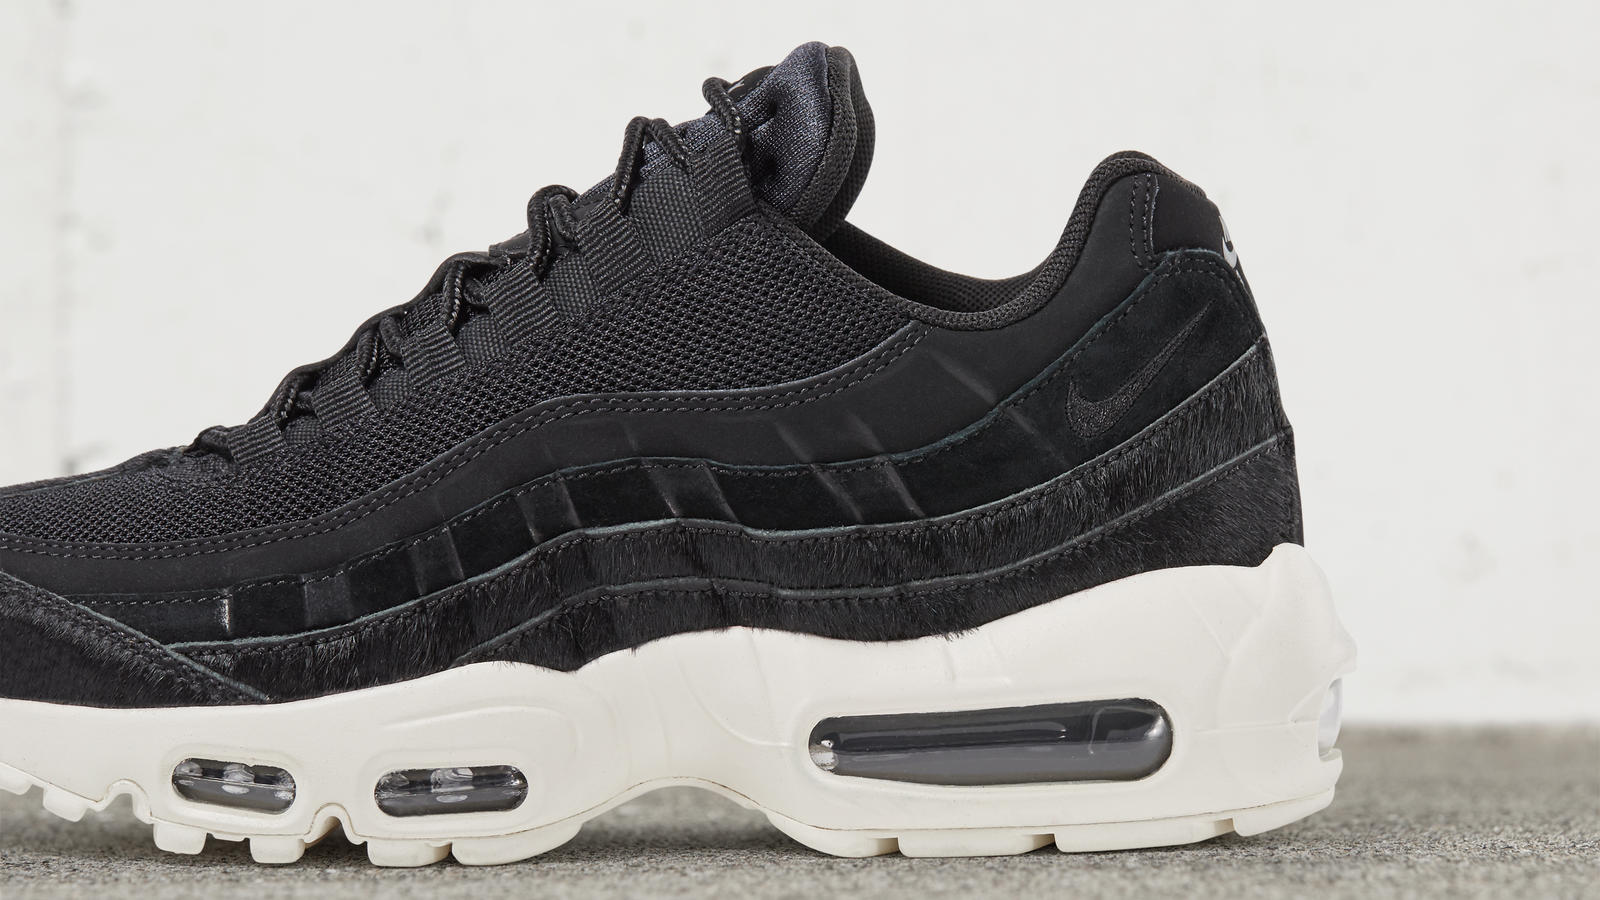 Air max 95 fur black 1 hd 1600